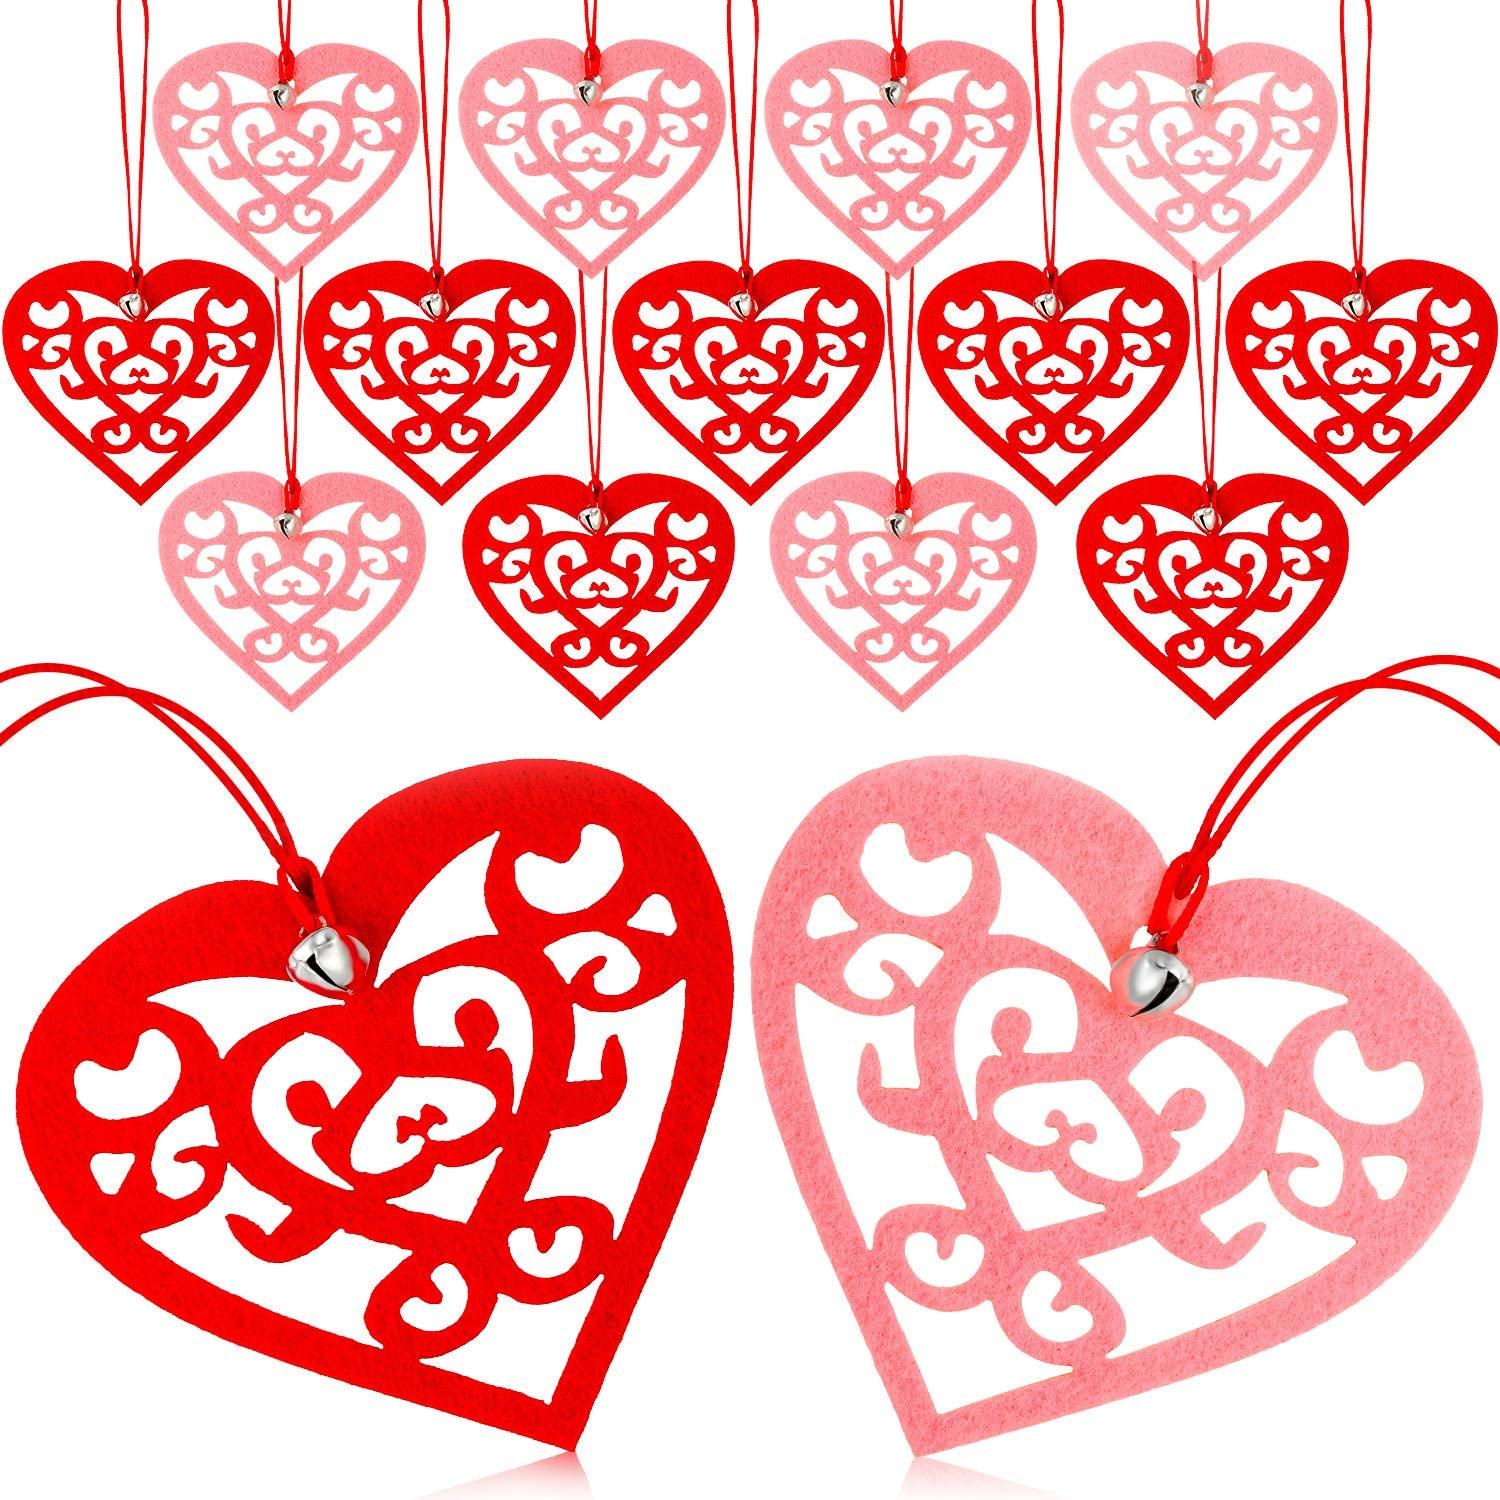 Bargain sale 40 Pieces Valentine's Day Felt Los Angeles Mall Sha Heart Ornaments Hanging